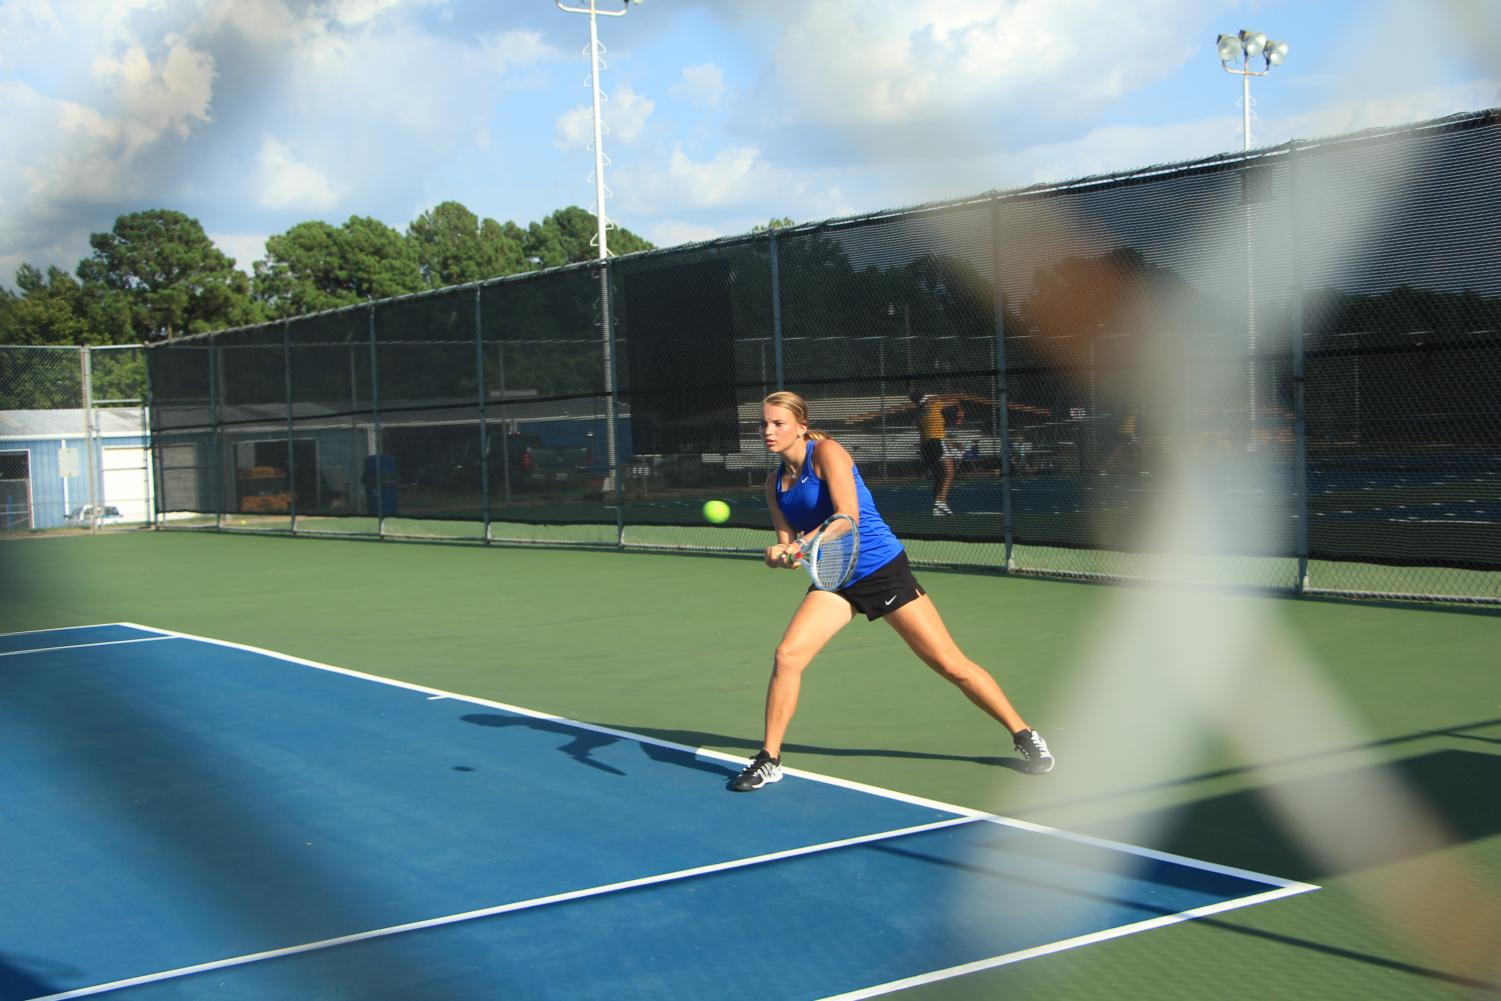 Junior Abby Van Andel competing in the Corsicana tennis tournament. She started her high school tennis career her freshman year.